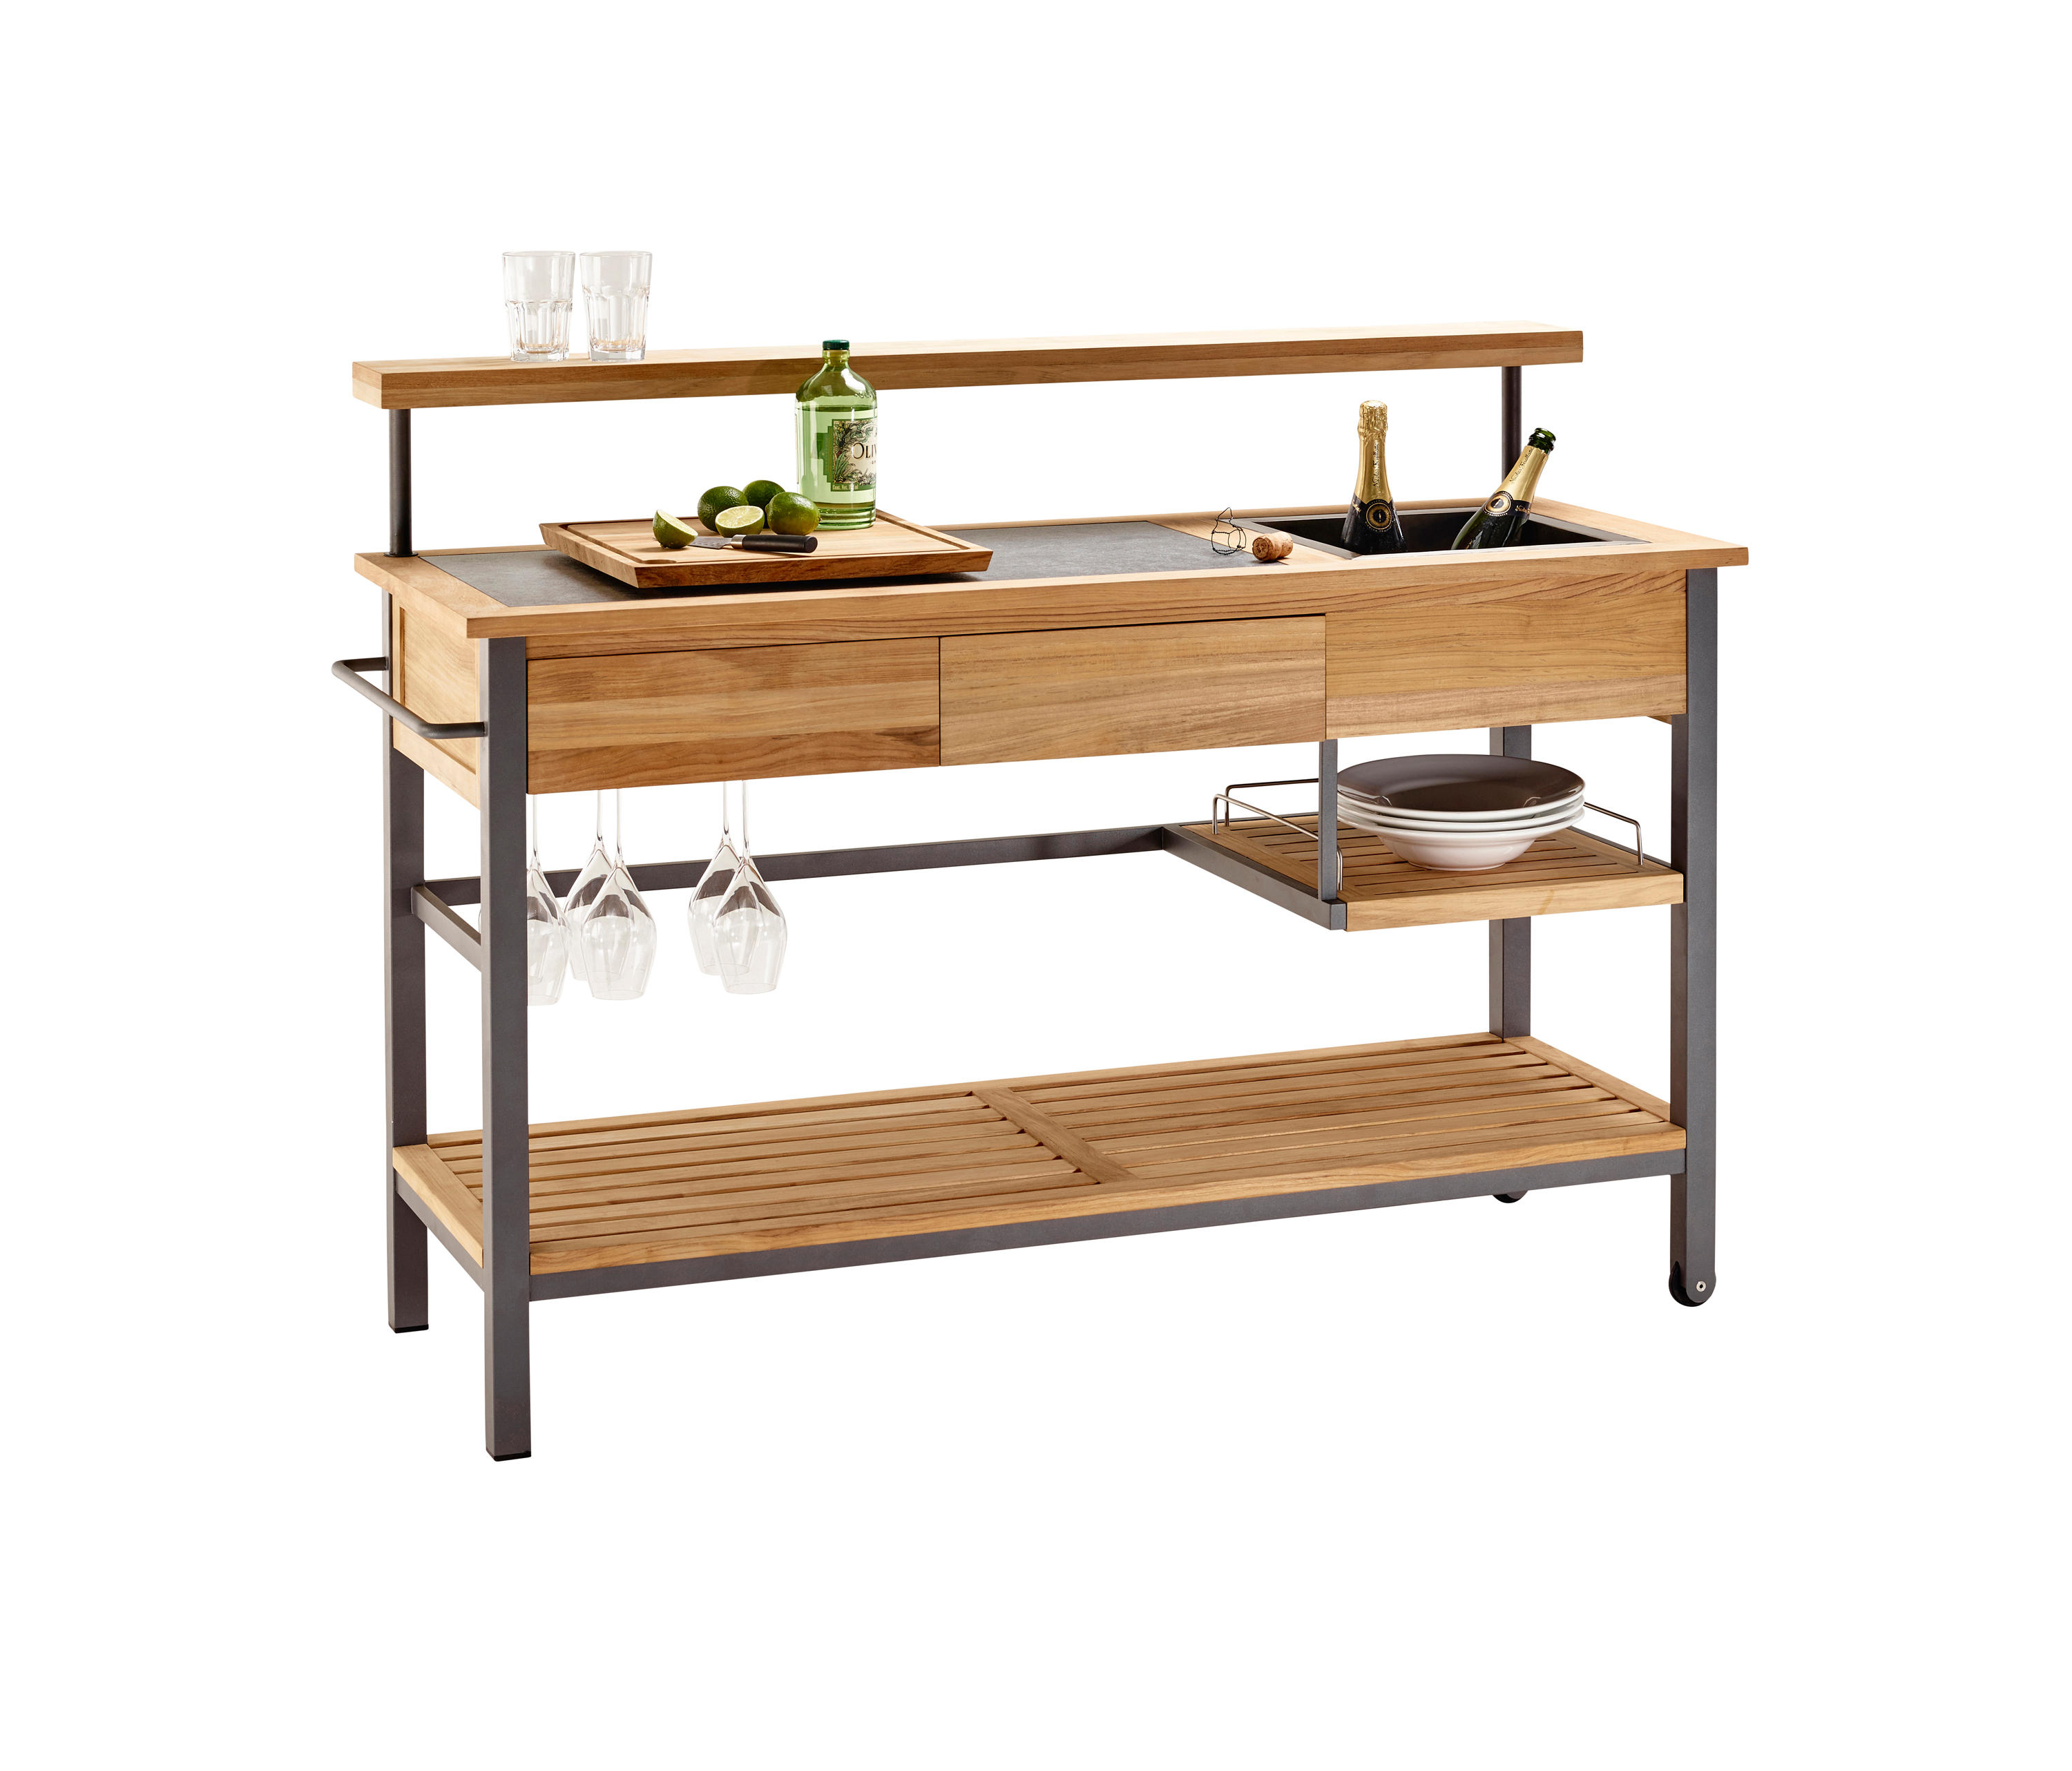 BUTLER KITCHEN TROLLEY - Outdoor kitchens from solpuri ...